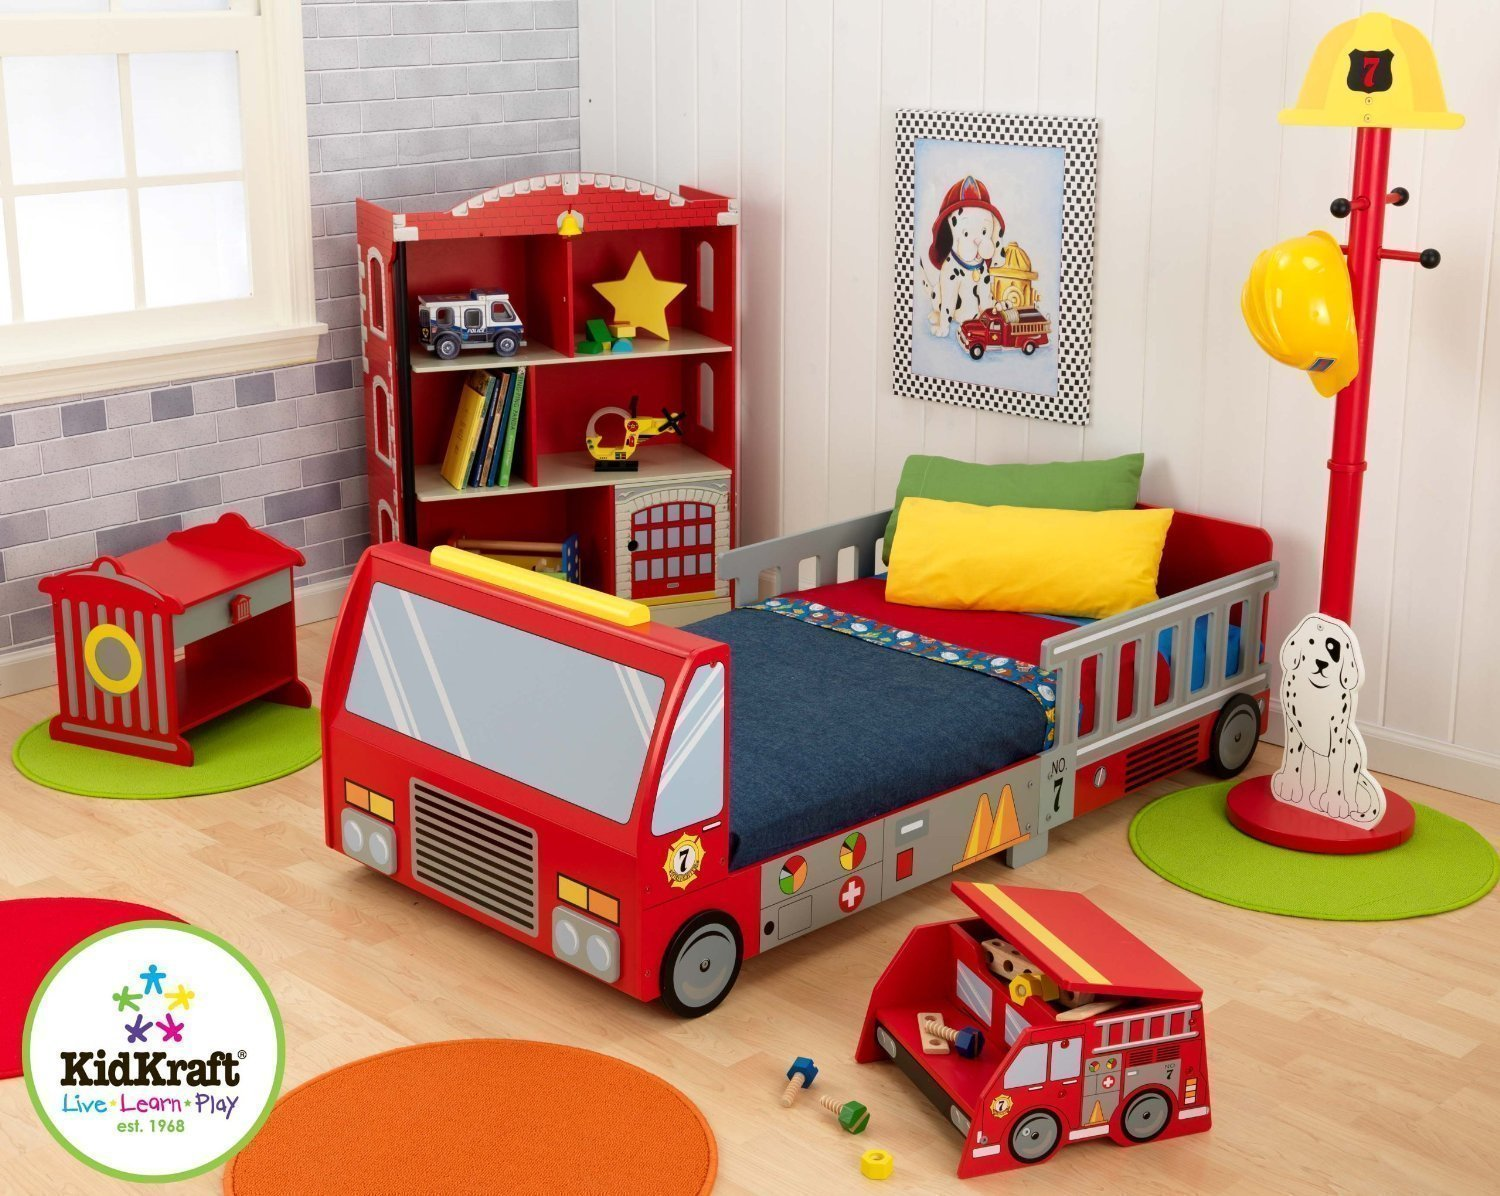 Full Review of KidKraft Fire Truck Toddler Bed 10